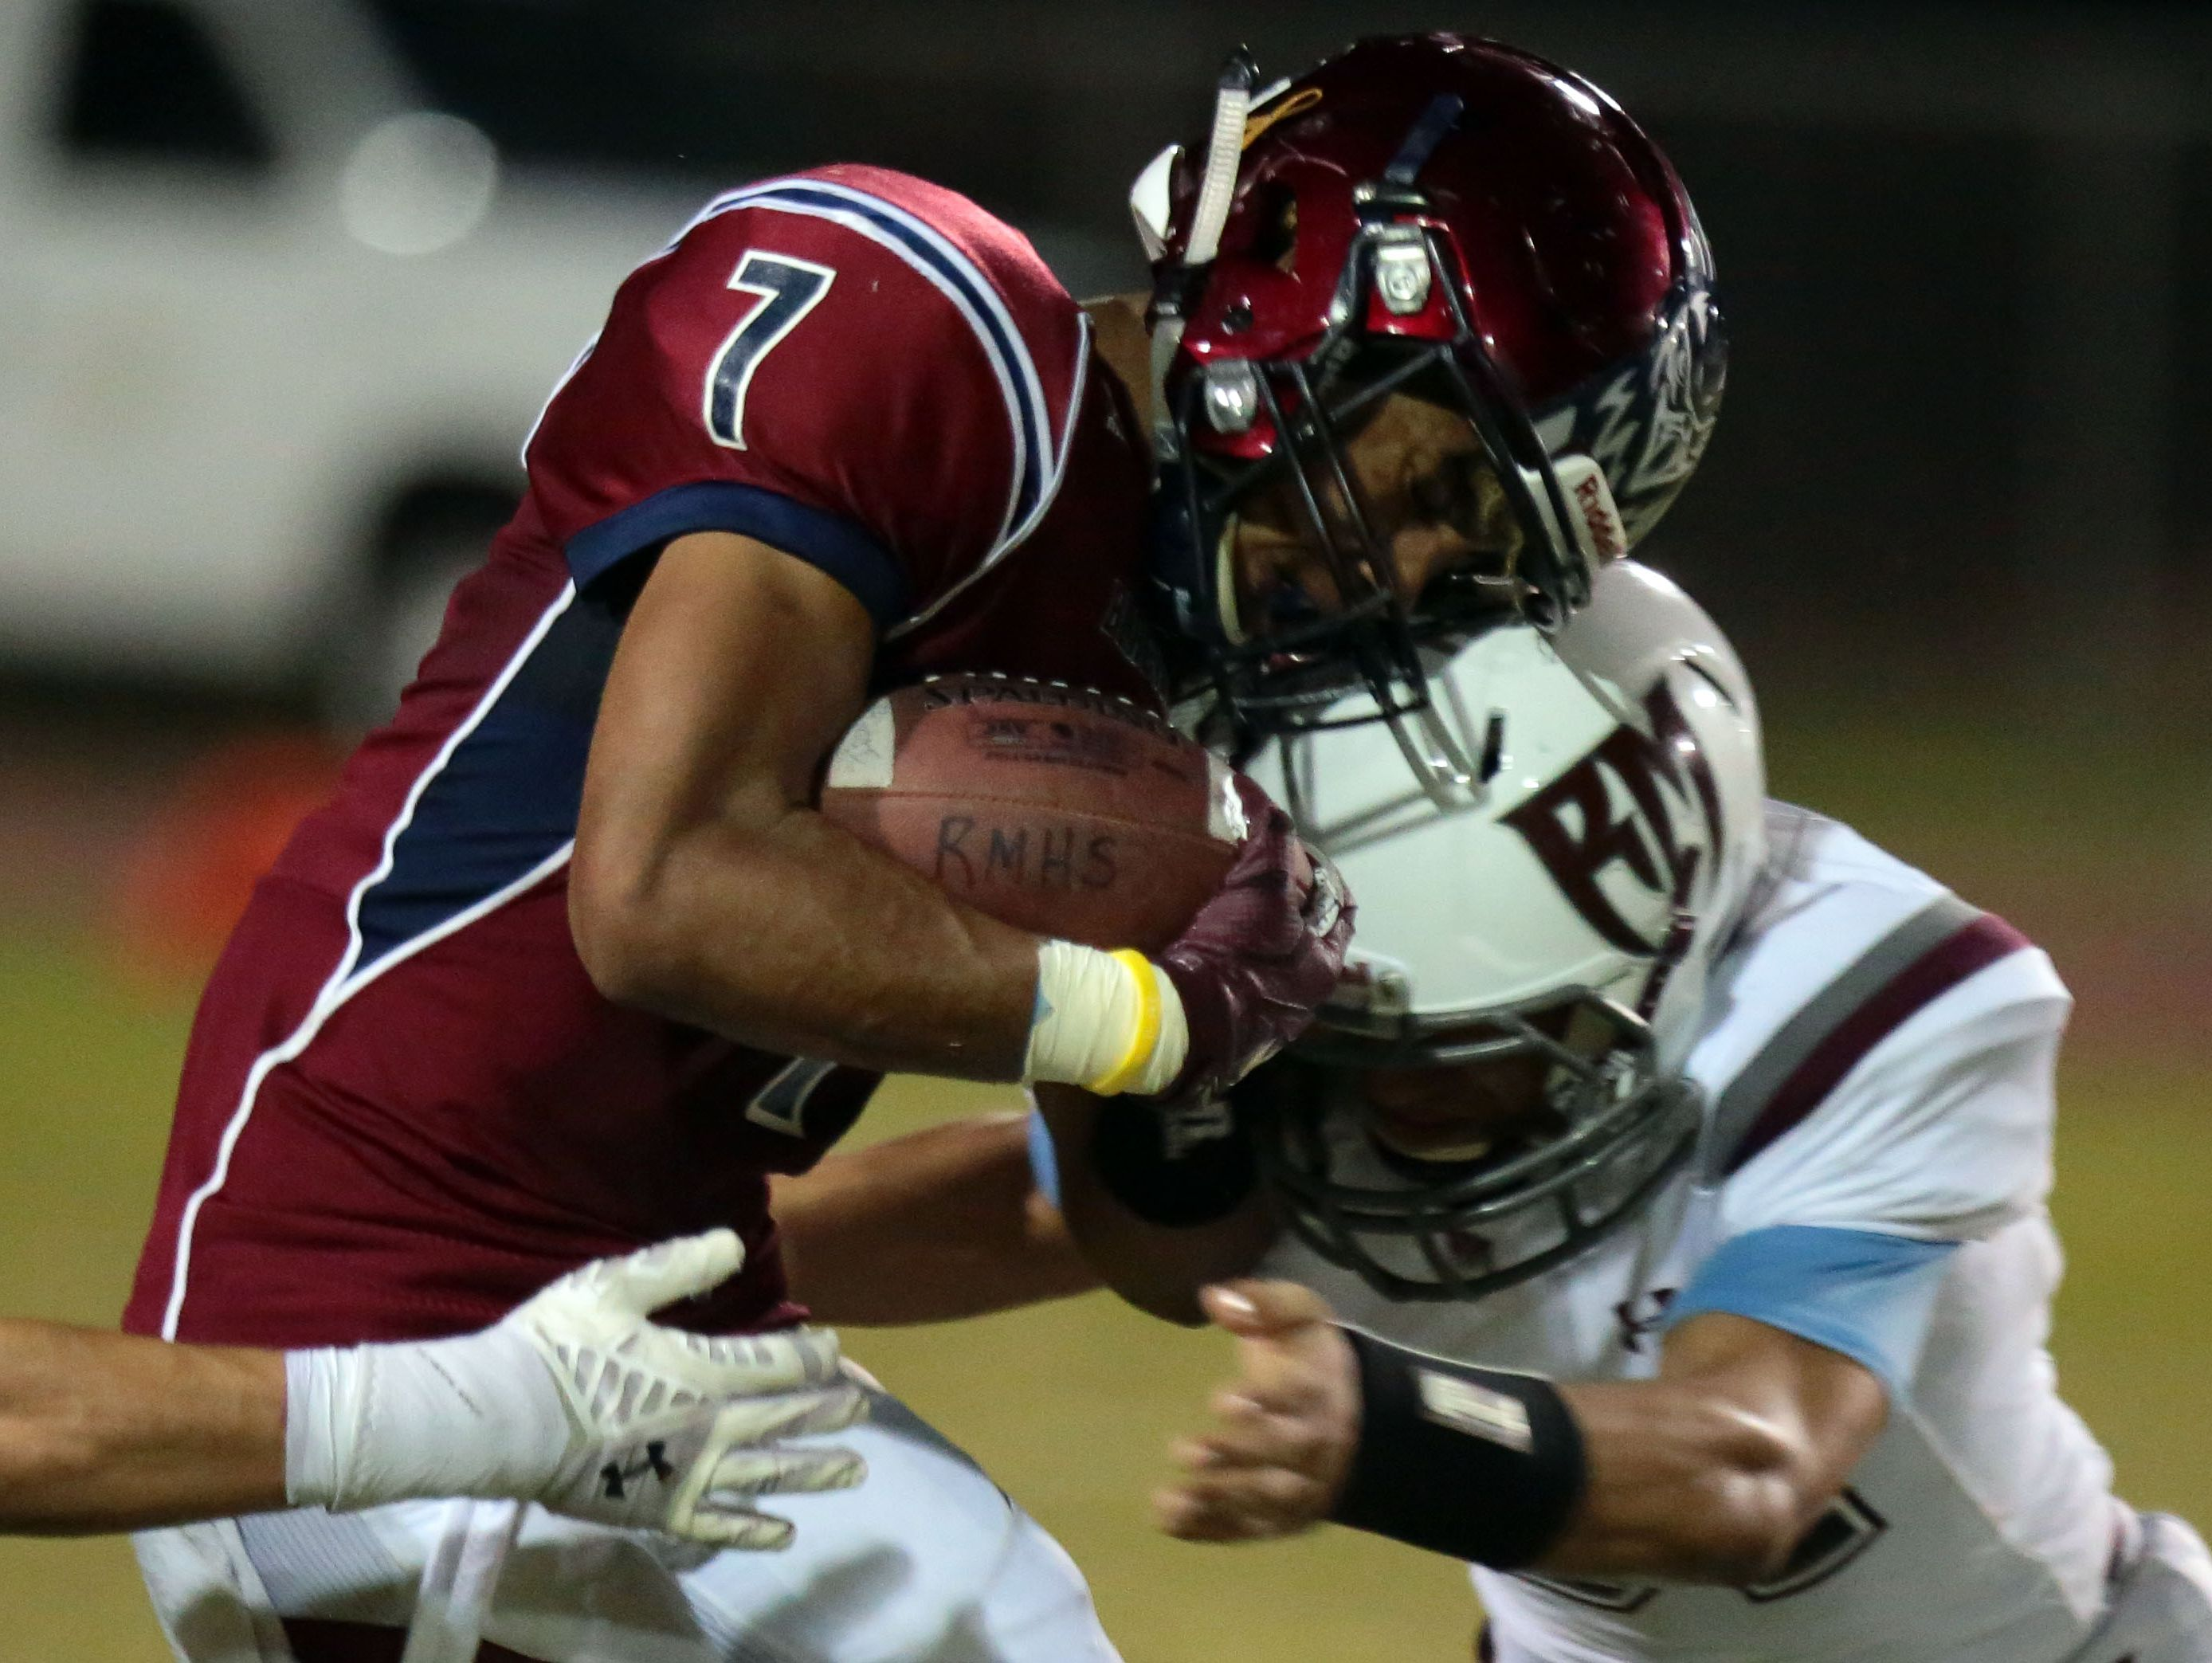 La Quinta's Justin Anderson carries the ball against Rancho Mirage on Friday, September 9, 2016 in La Quinta.